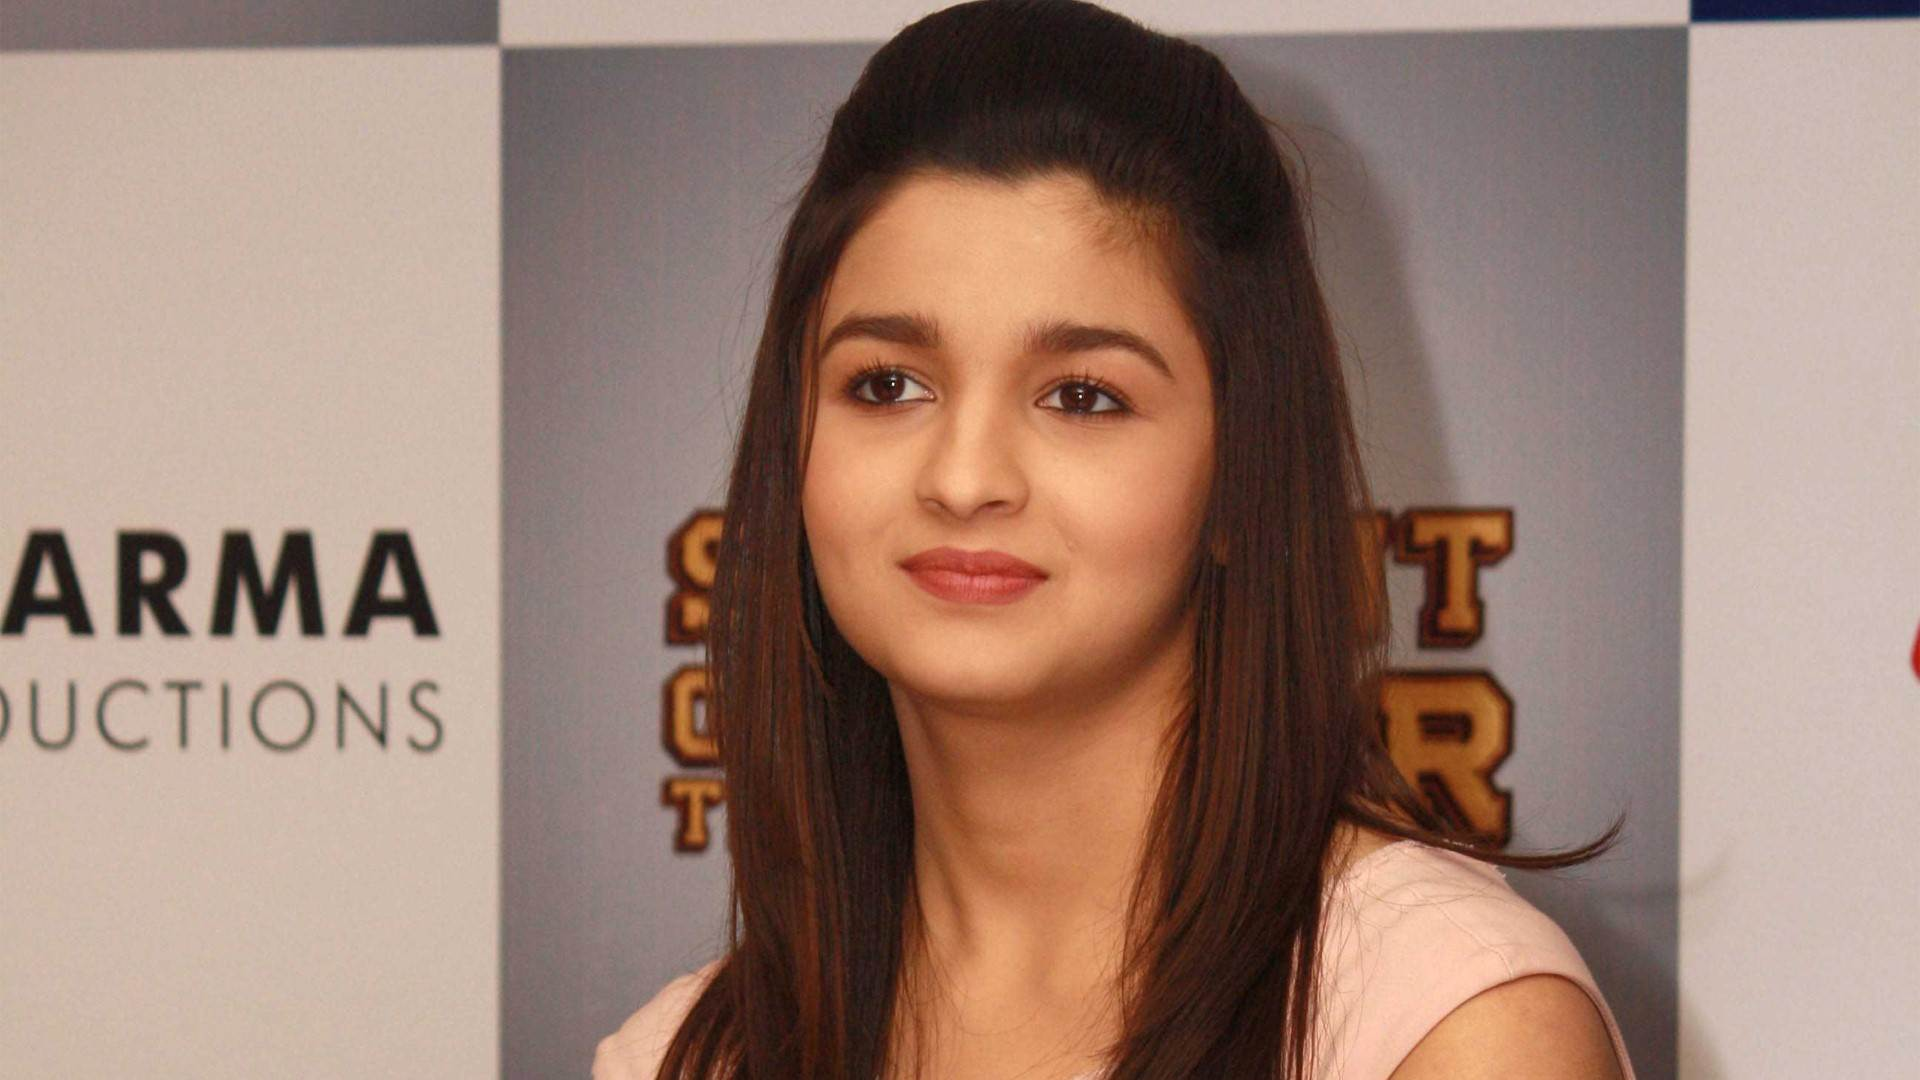 Alia Bhatt Wallpapers  Free Download HD Cute Bollywood Actress Images 1920x1080